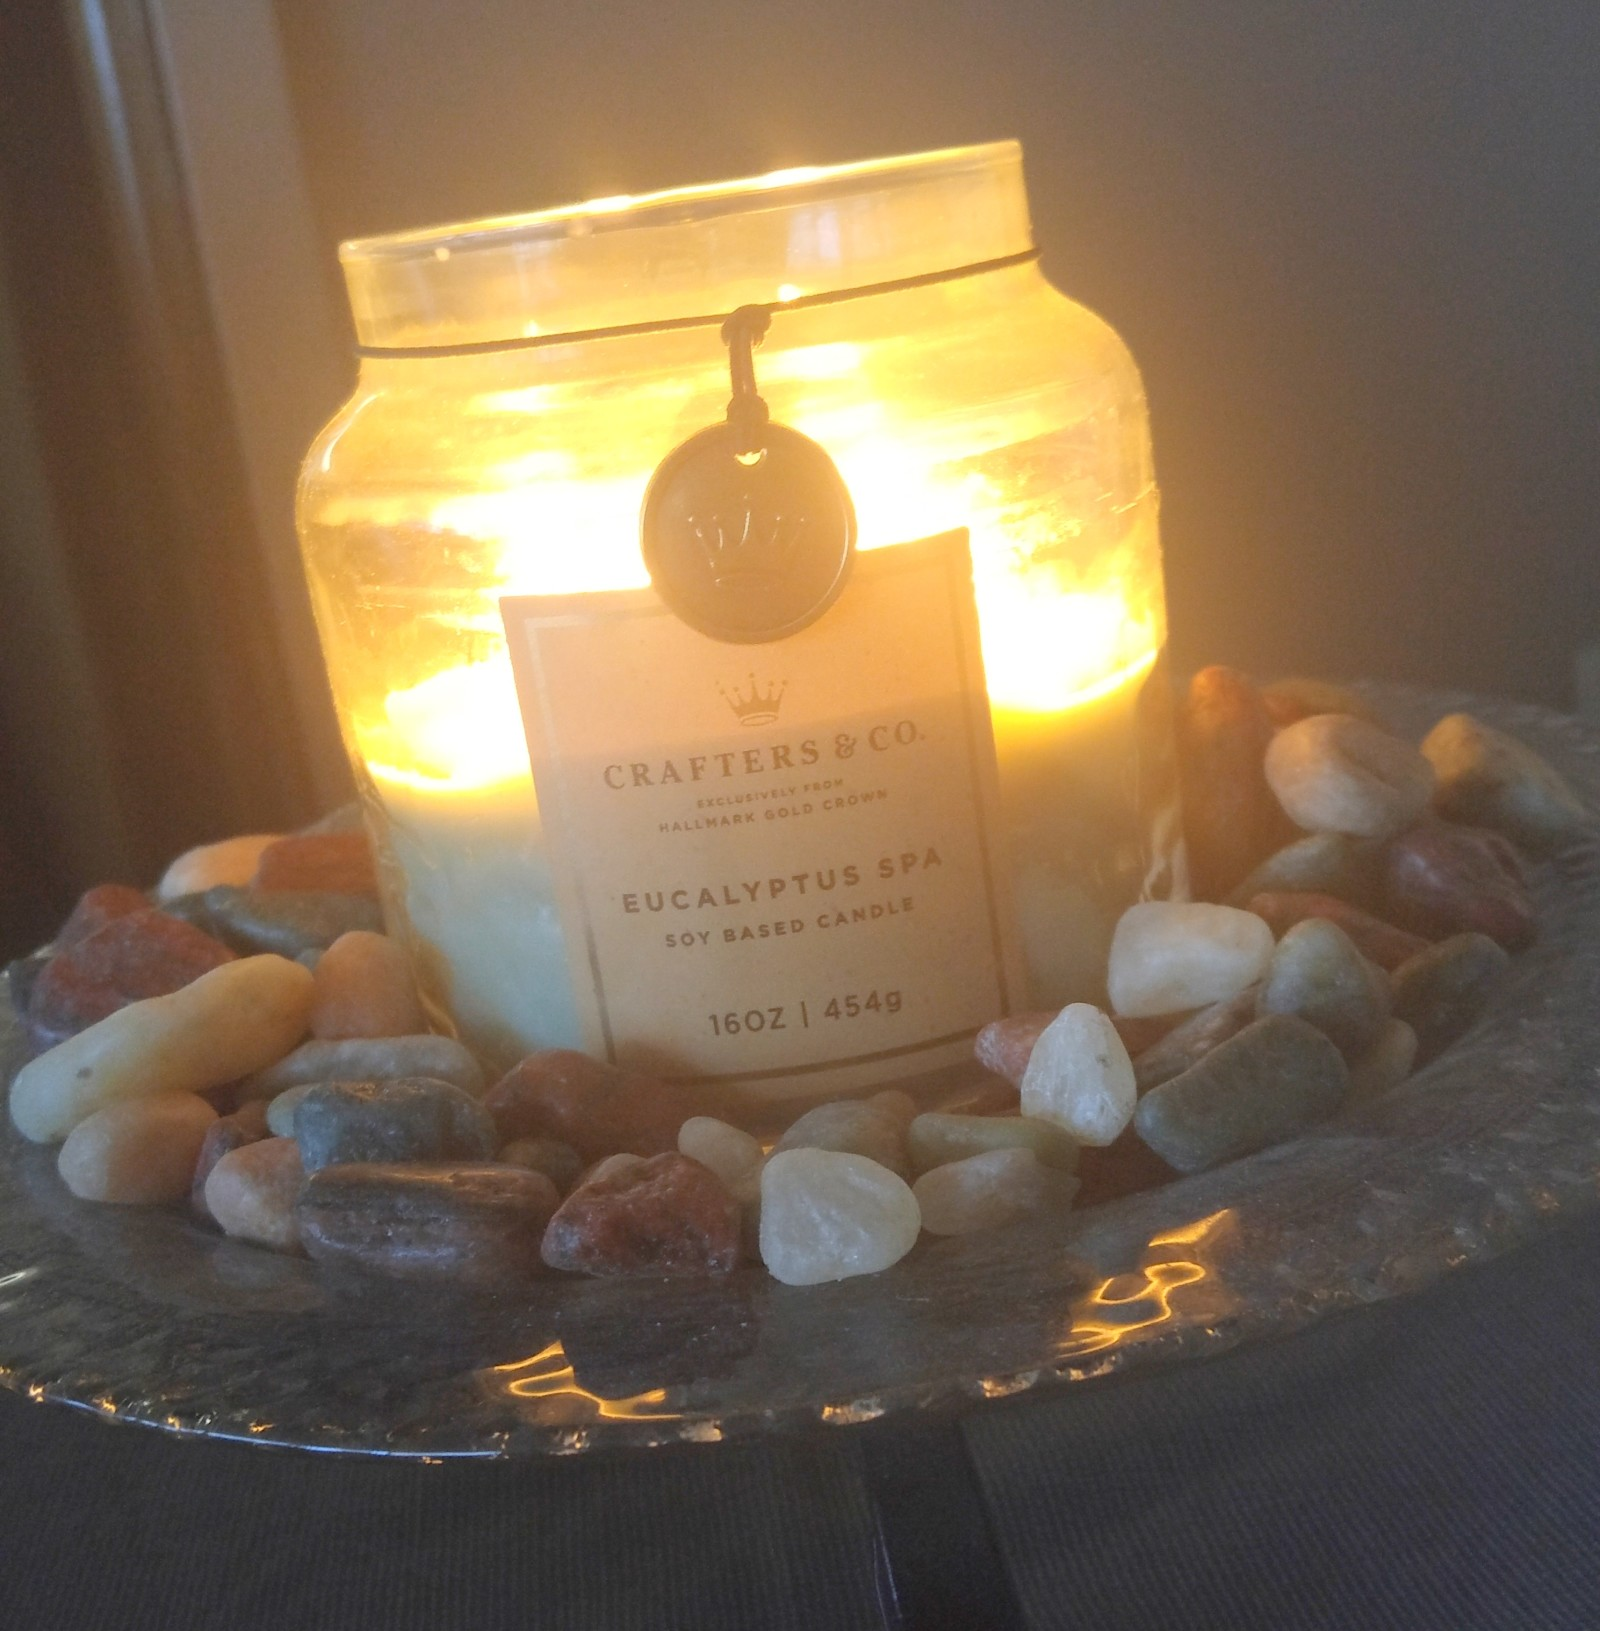 Crafters & Co. Eucalyptus Spa Candle from Hallmark Gold Crown